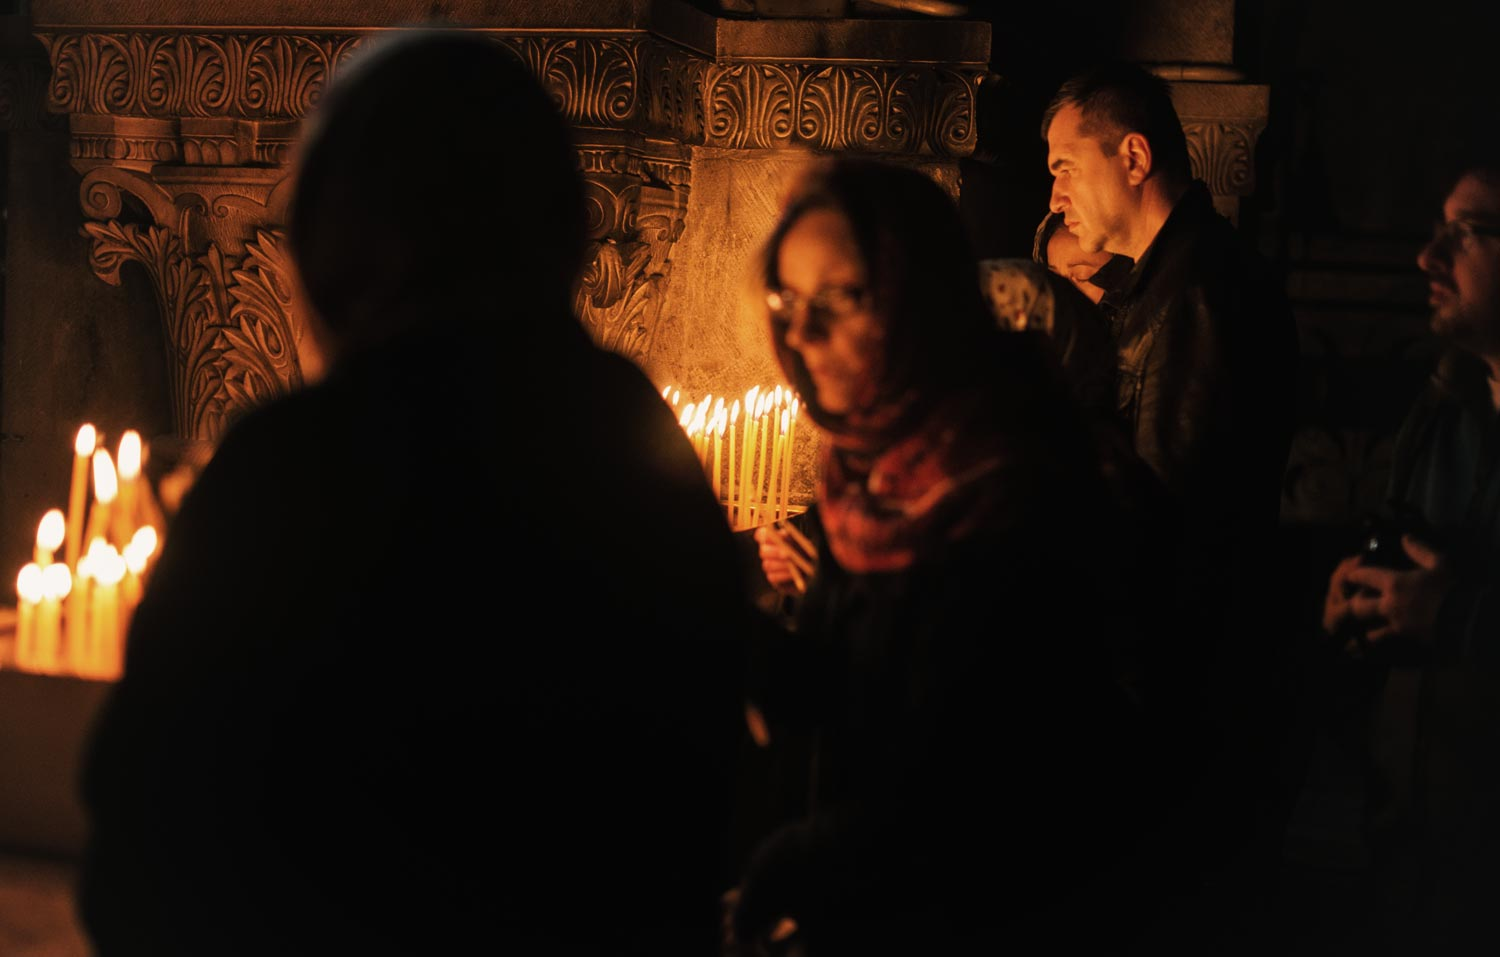 People lighting candles at the Church of the Holy Sepulcher.